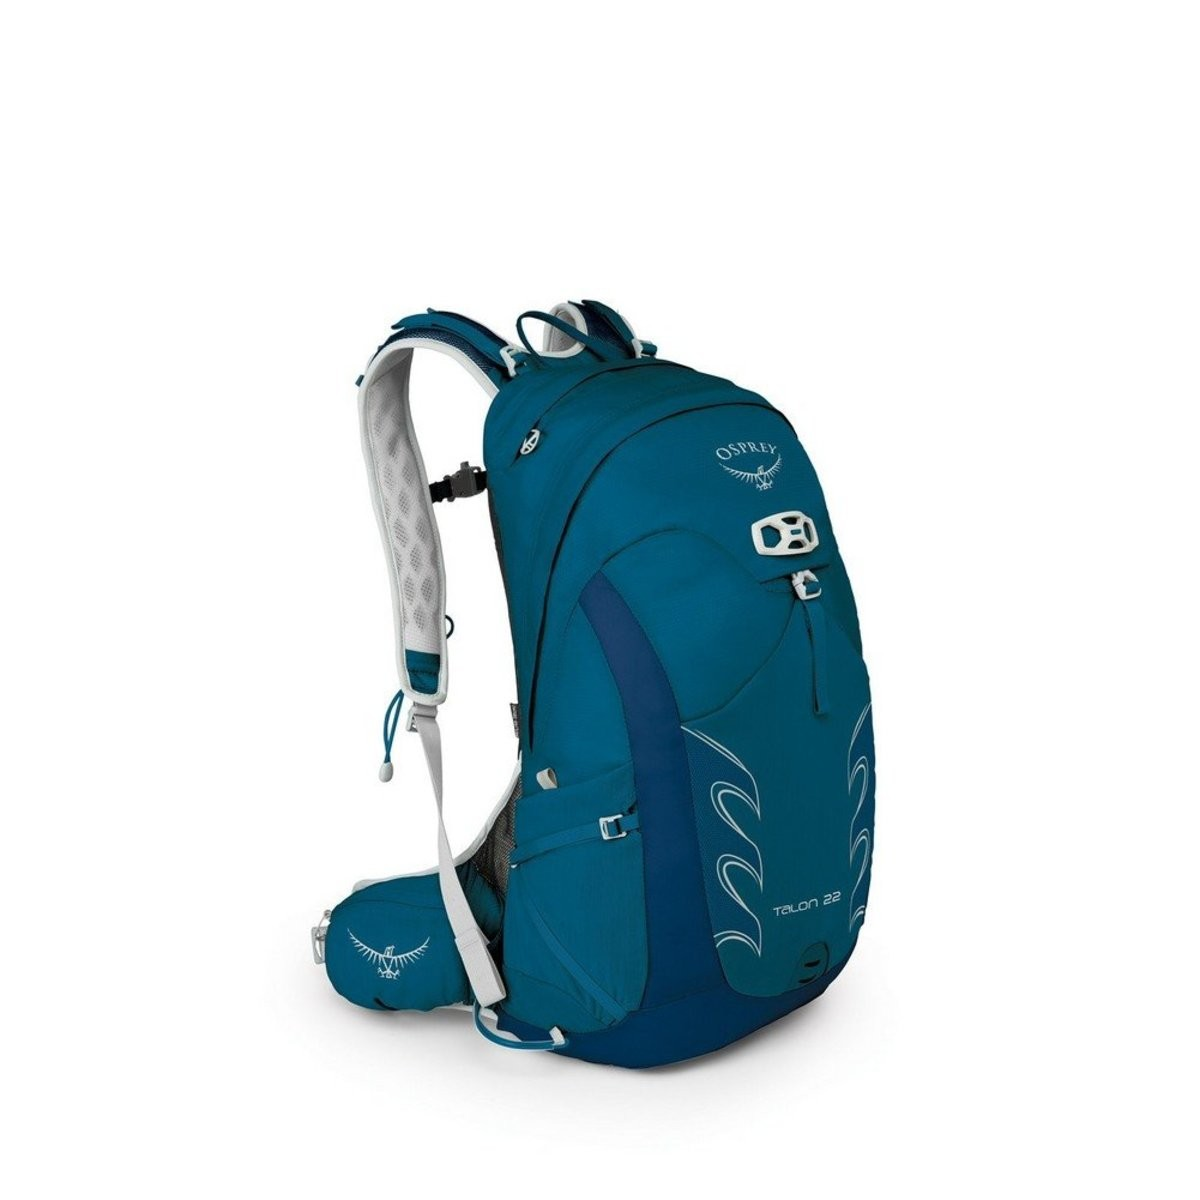 Osprey TALON TECHNICAL BACKPACK - 22 L  ULTRAMARINE BLUE